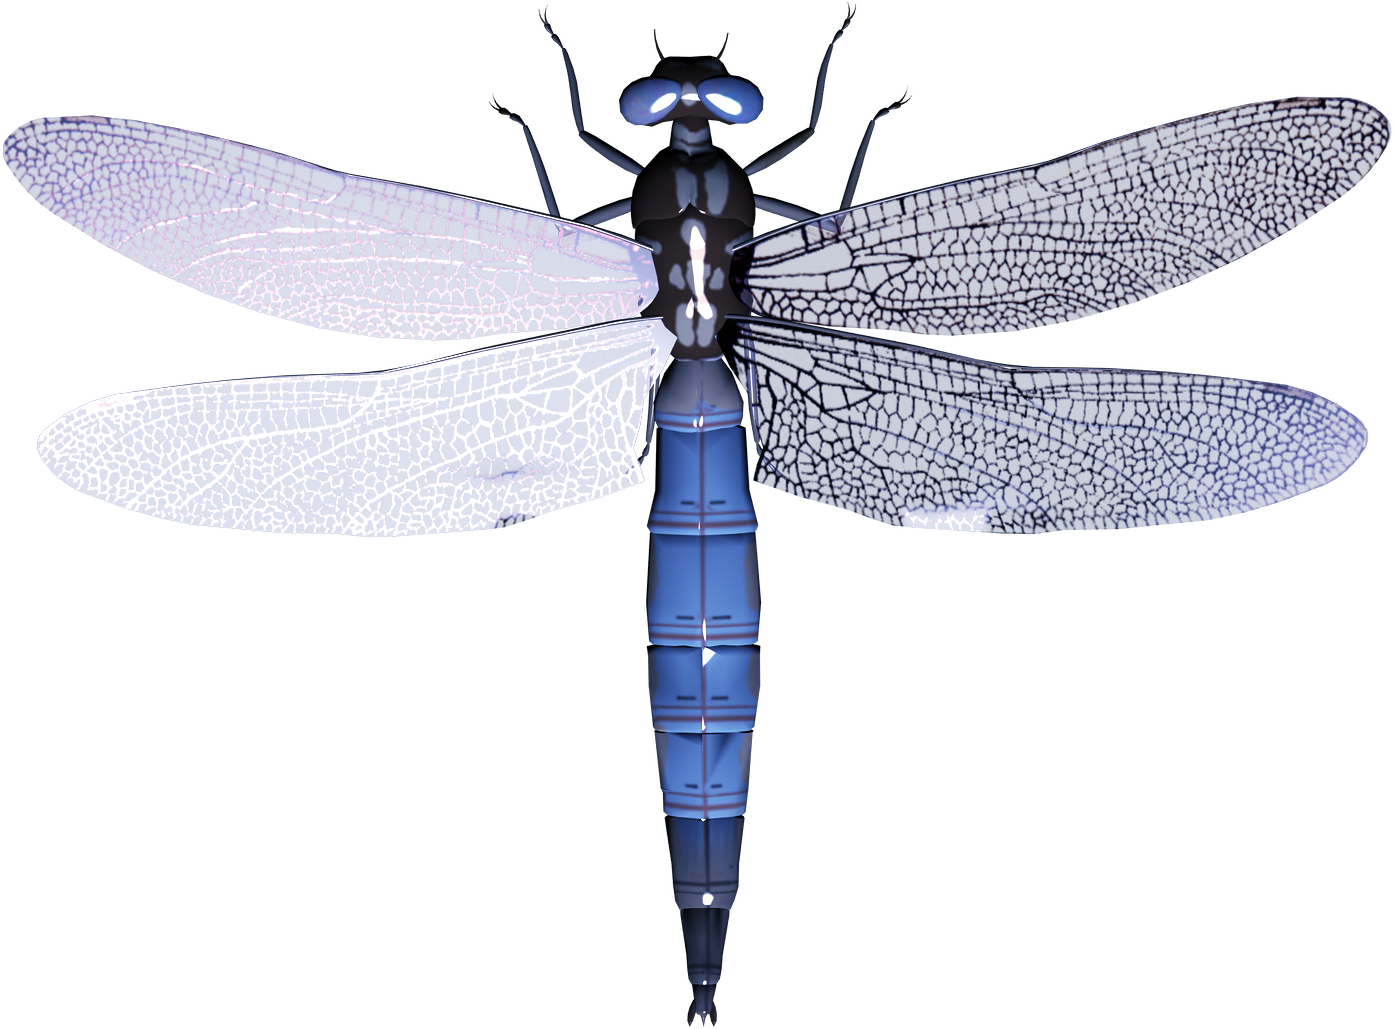 Worm clipart maggot. Dragonfly png images free